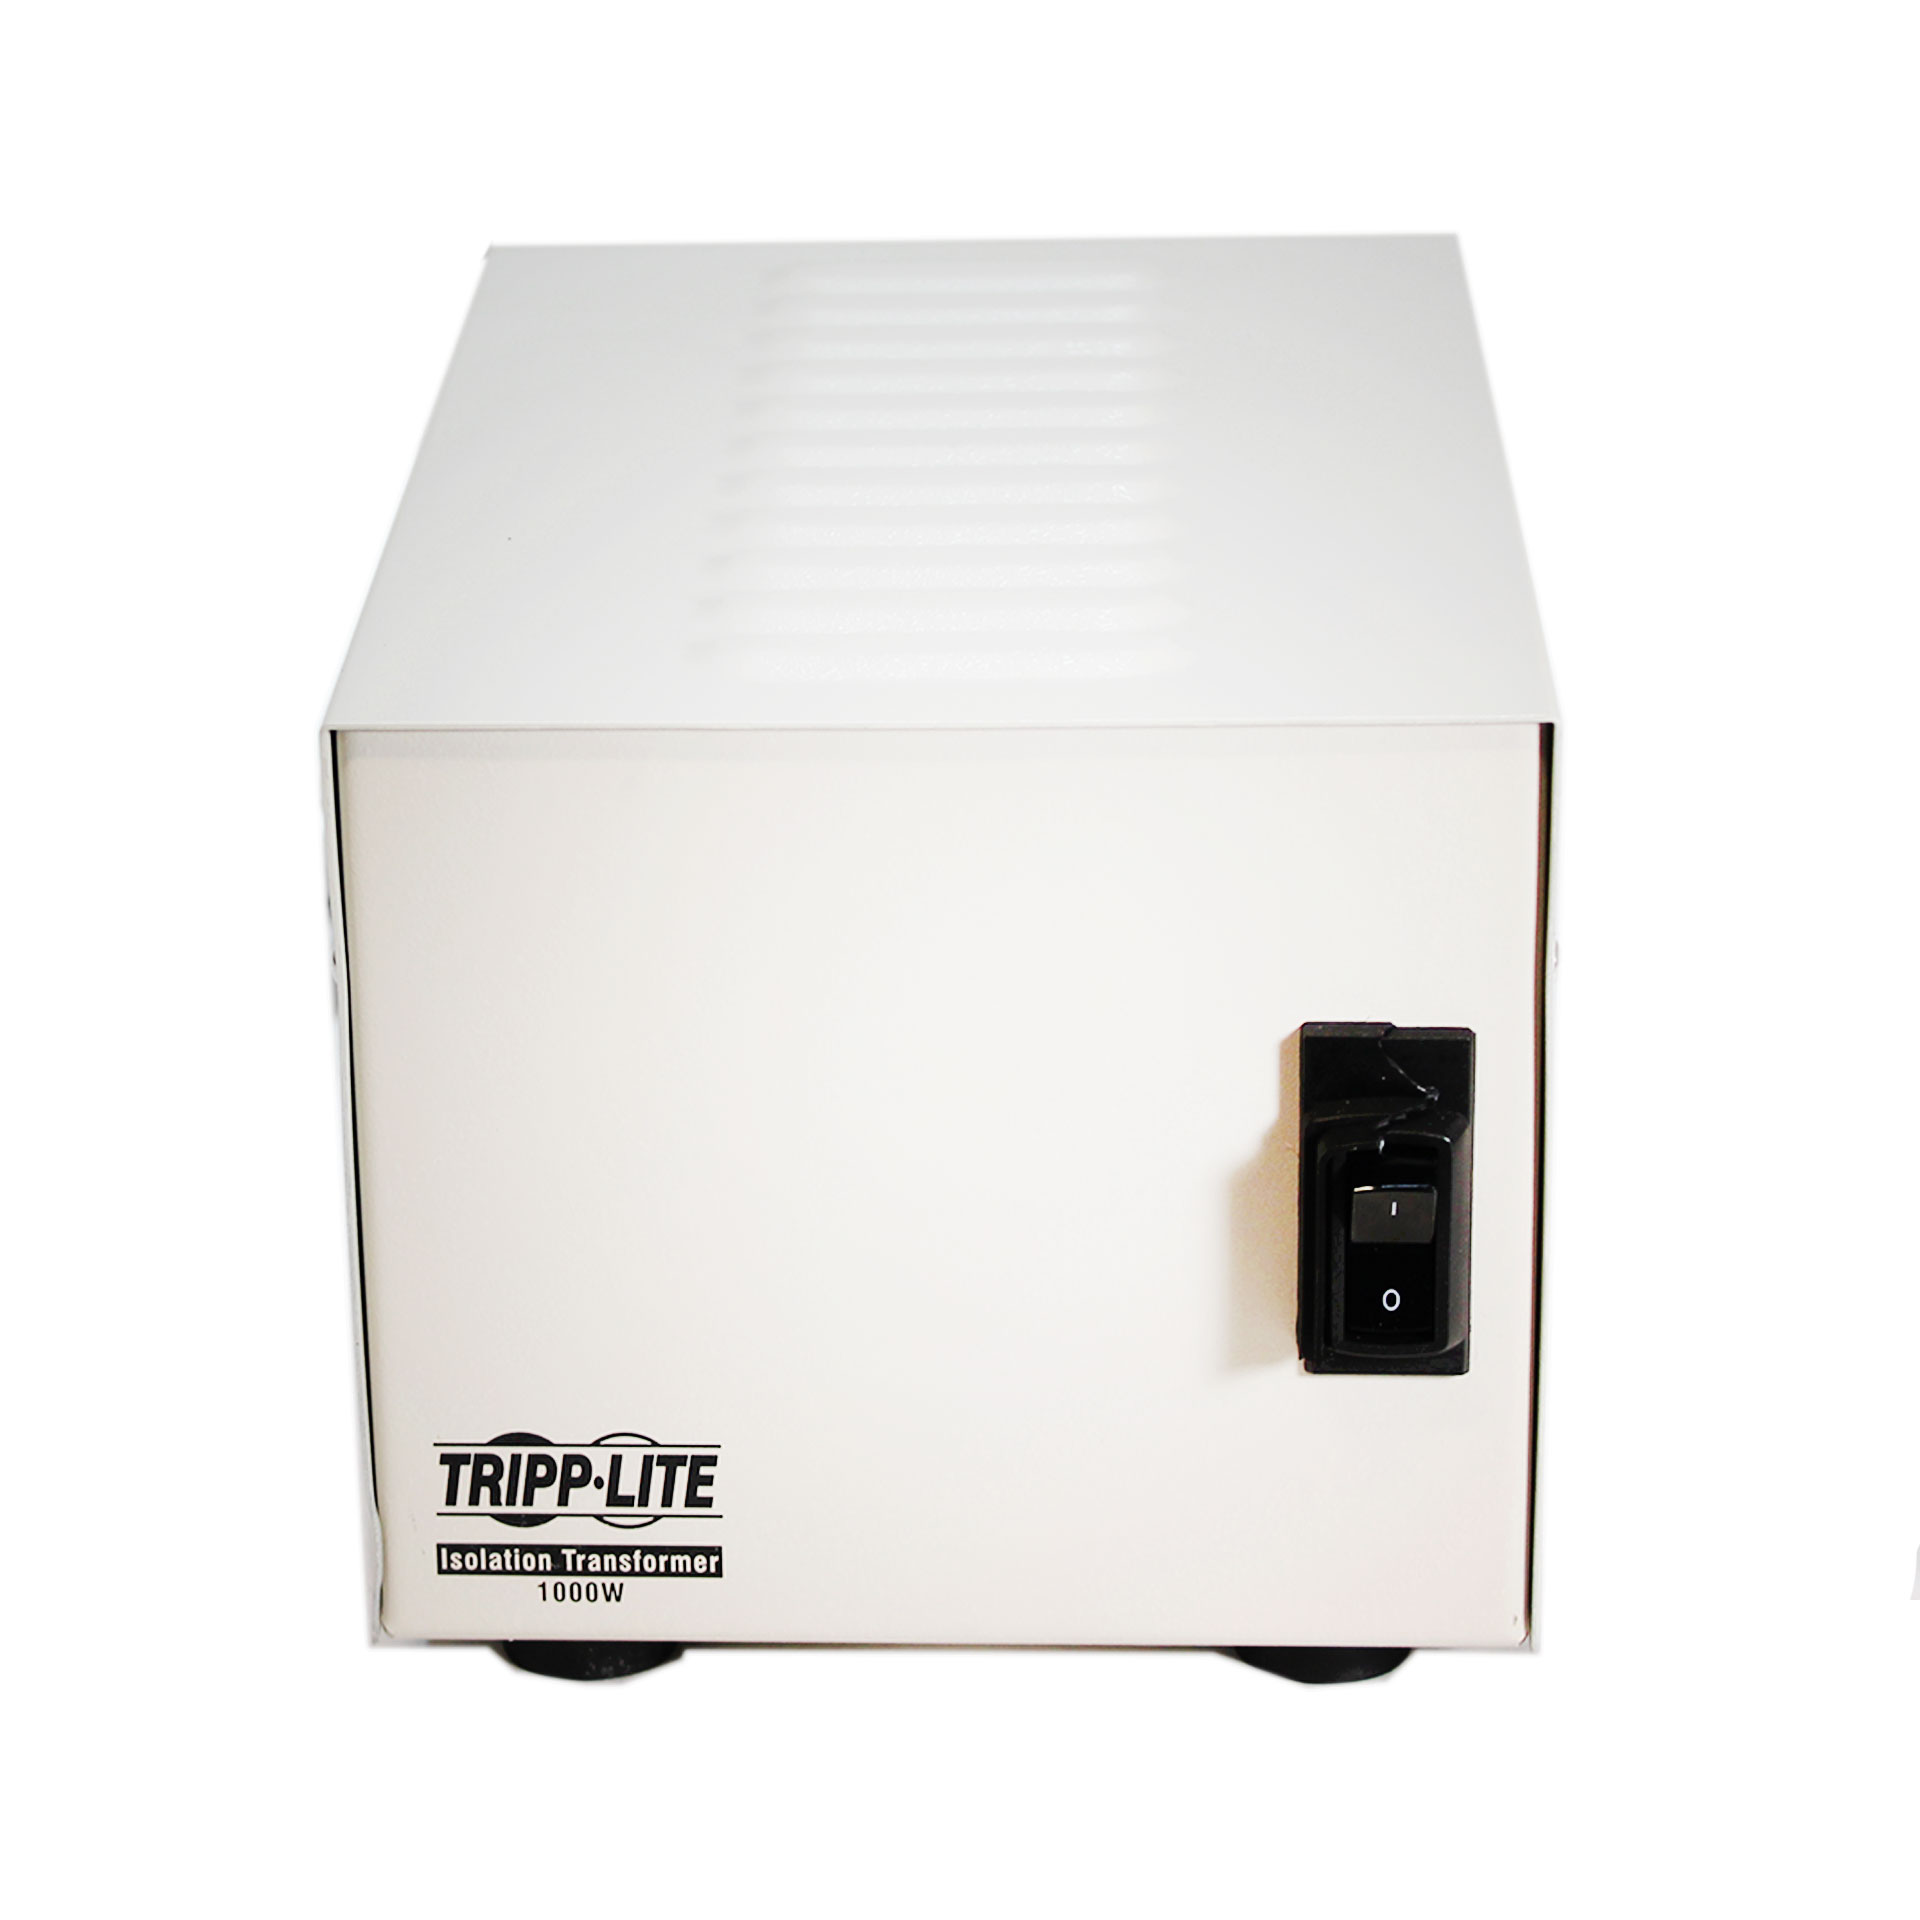 Tripp Lite Isolation Transformer 1000W Medical Surge IS1000HG